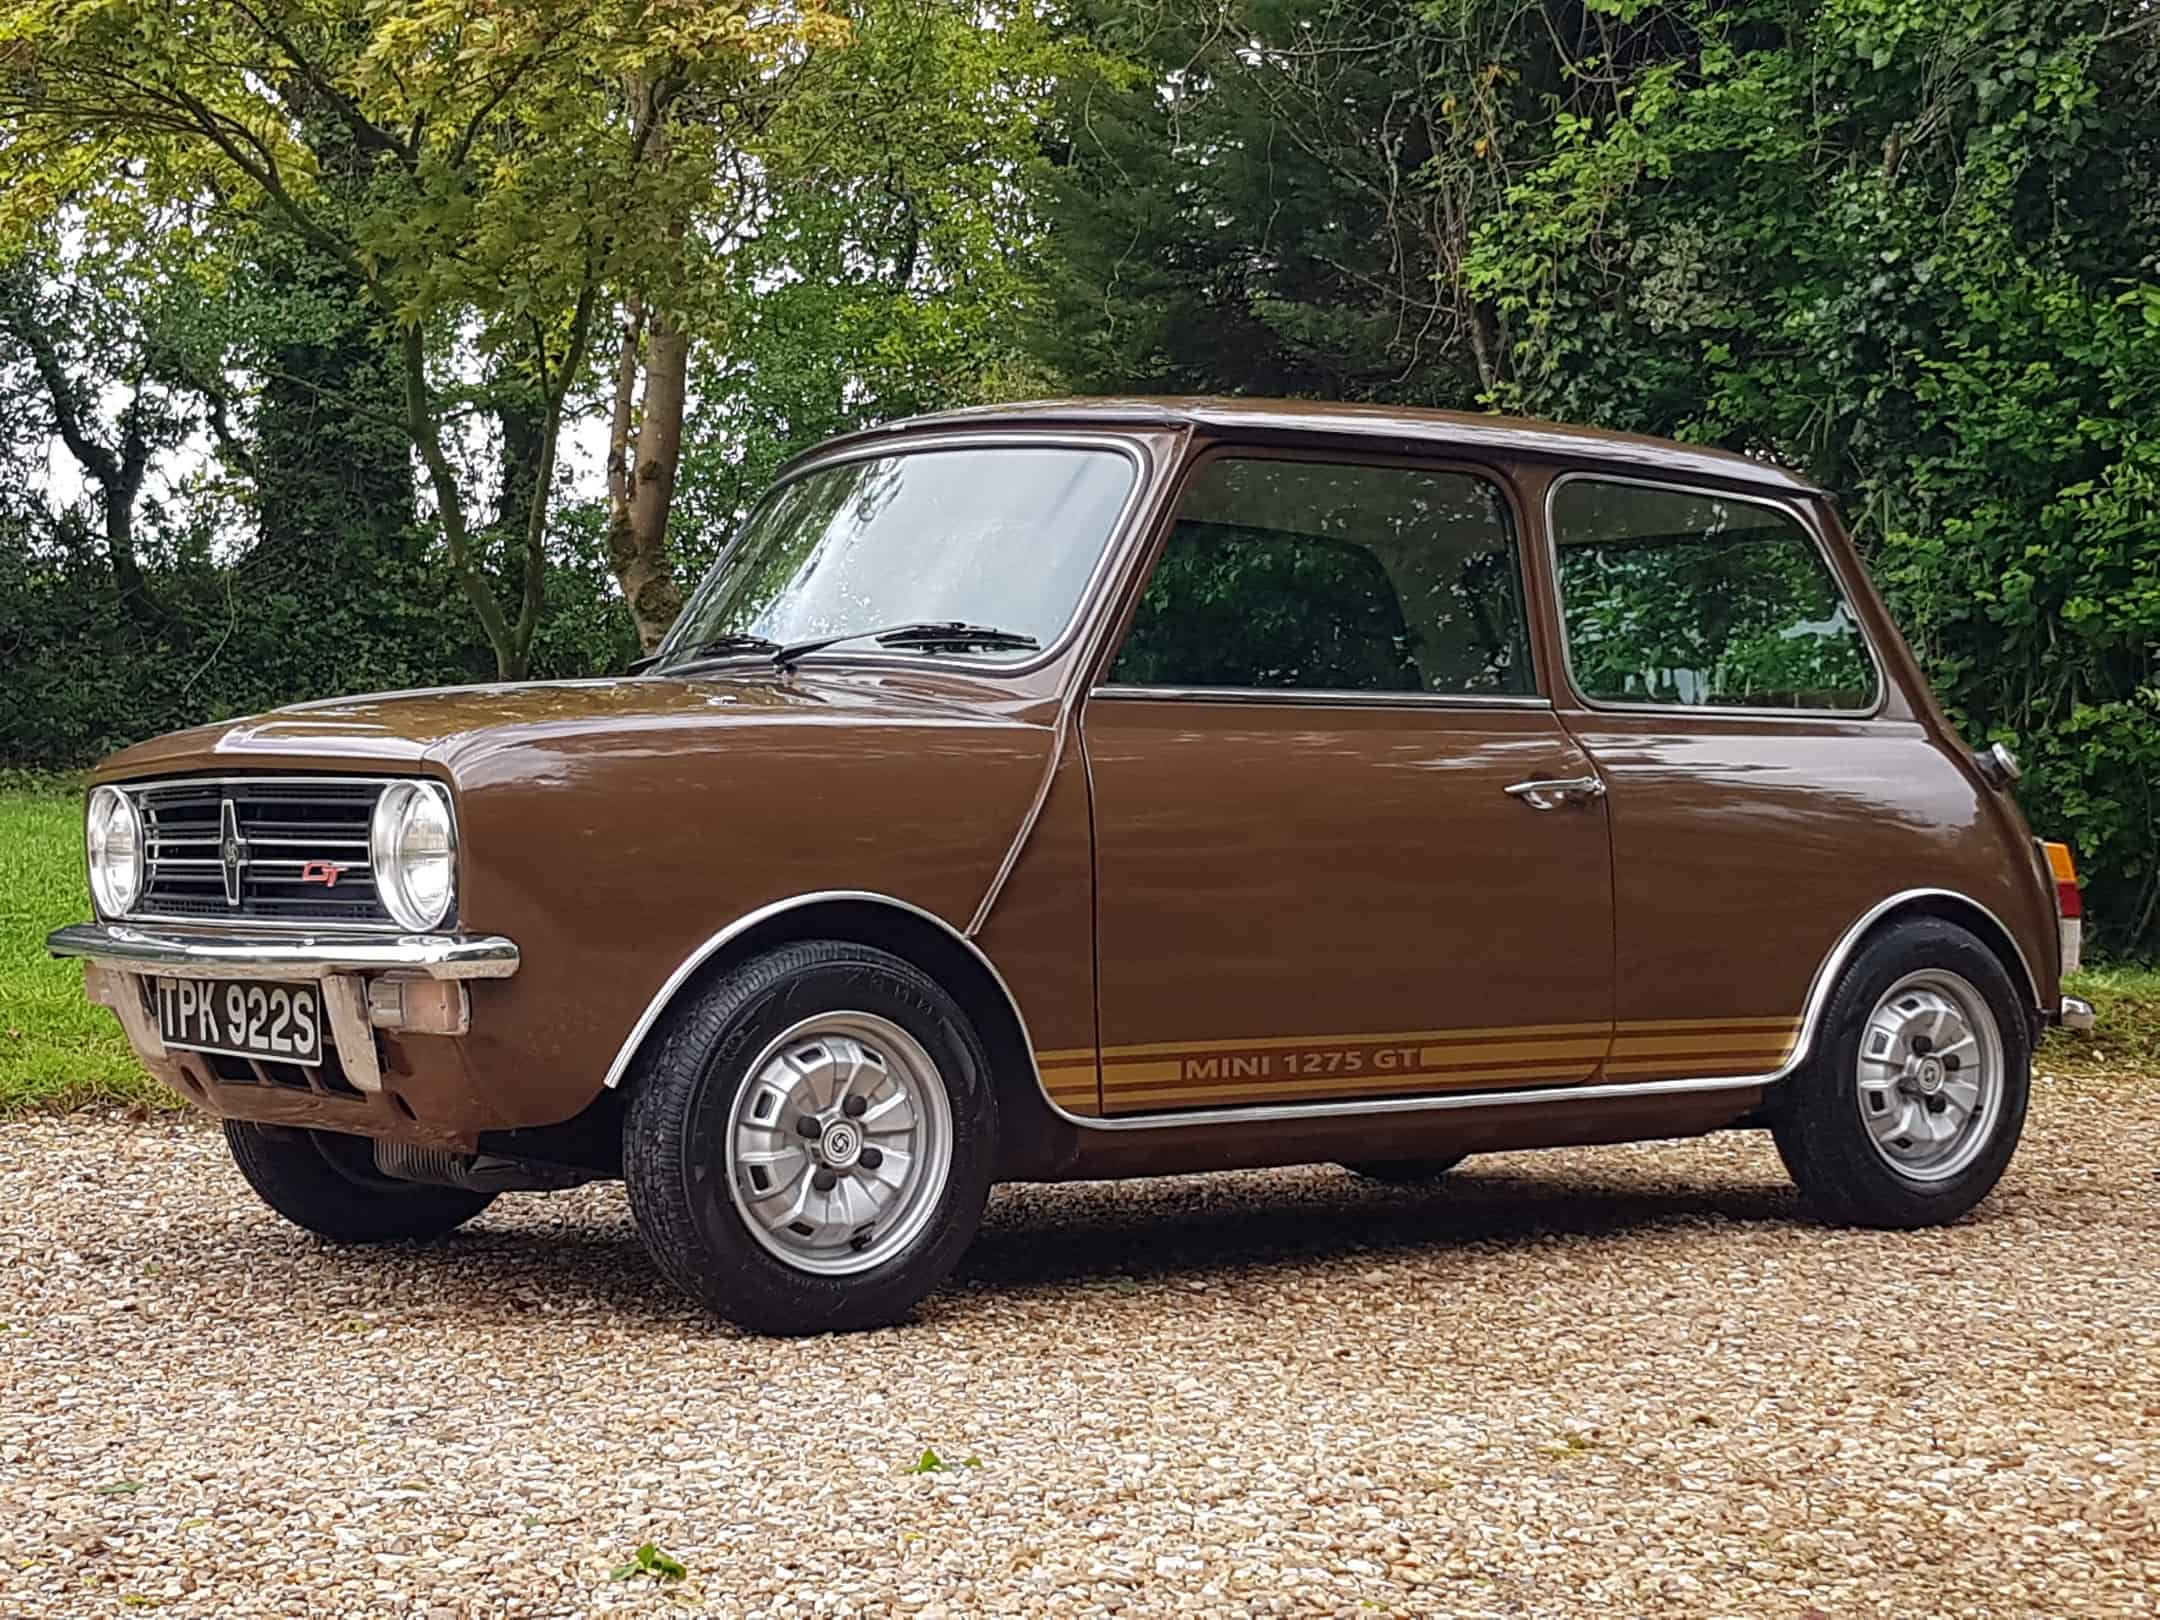 ** NOW SOLD ** 1977 Mini 1275 GT In Classic Russet Brown